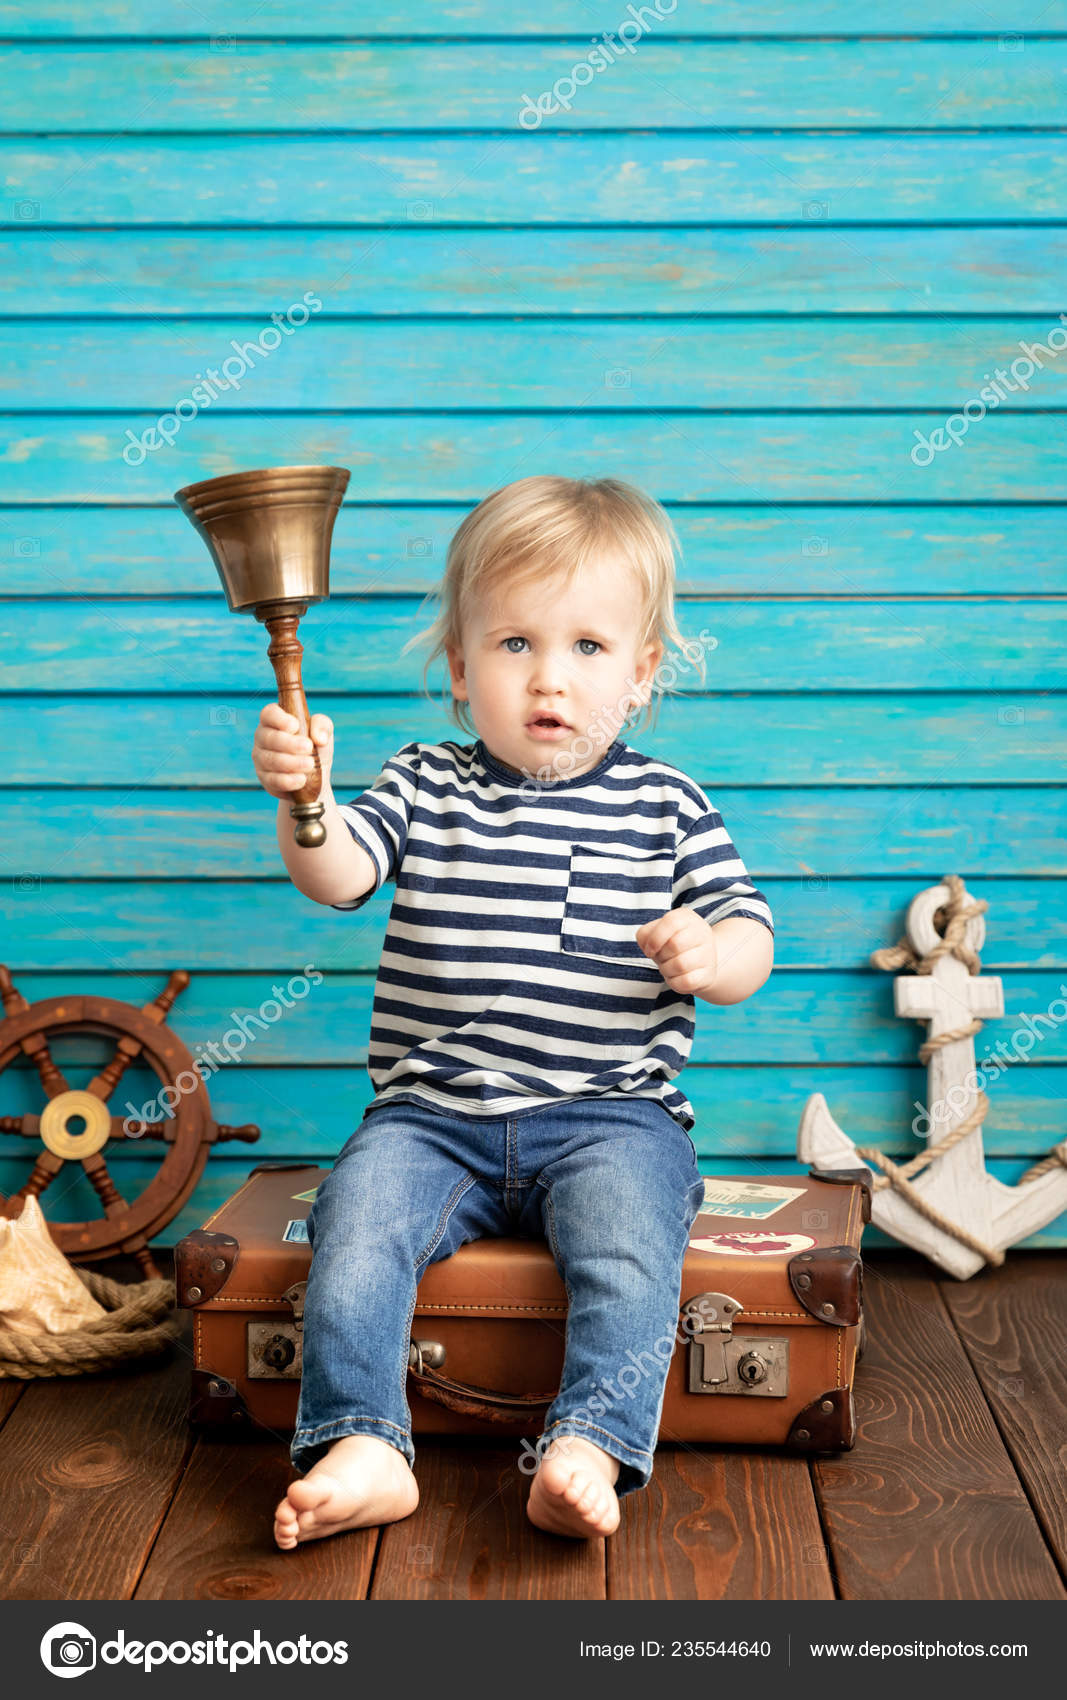 VÌ SAO NHO ? ......HÁT  - Page 5 Depositphotos_235544640-stock-photo-happy-toddler-holding-bell-playing